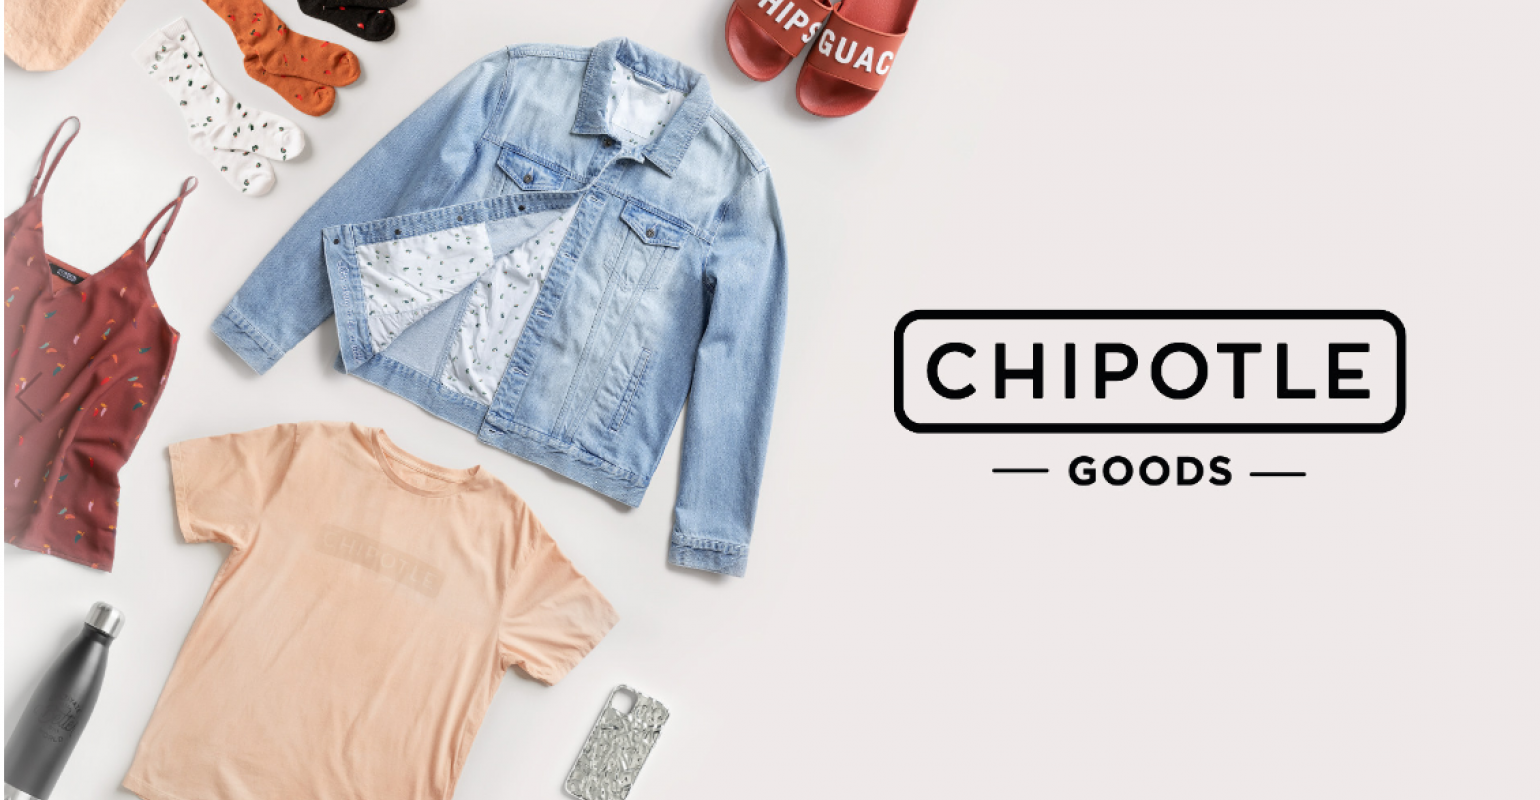 Chipotle Mexican Grill enters into sustainable fashion line